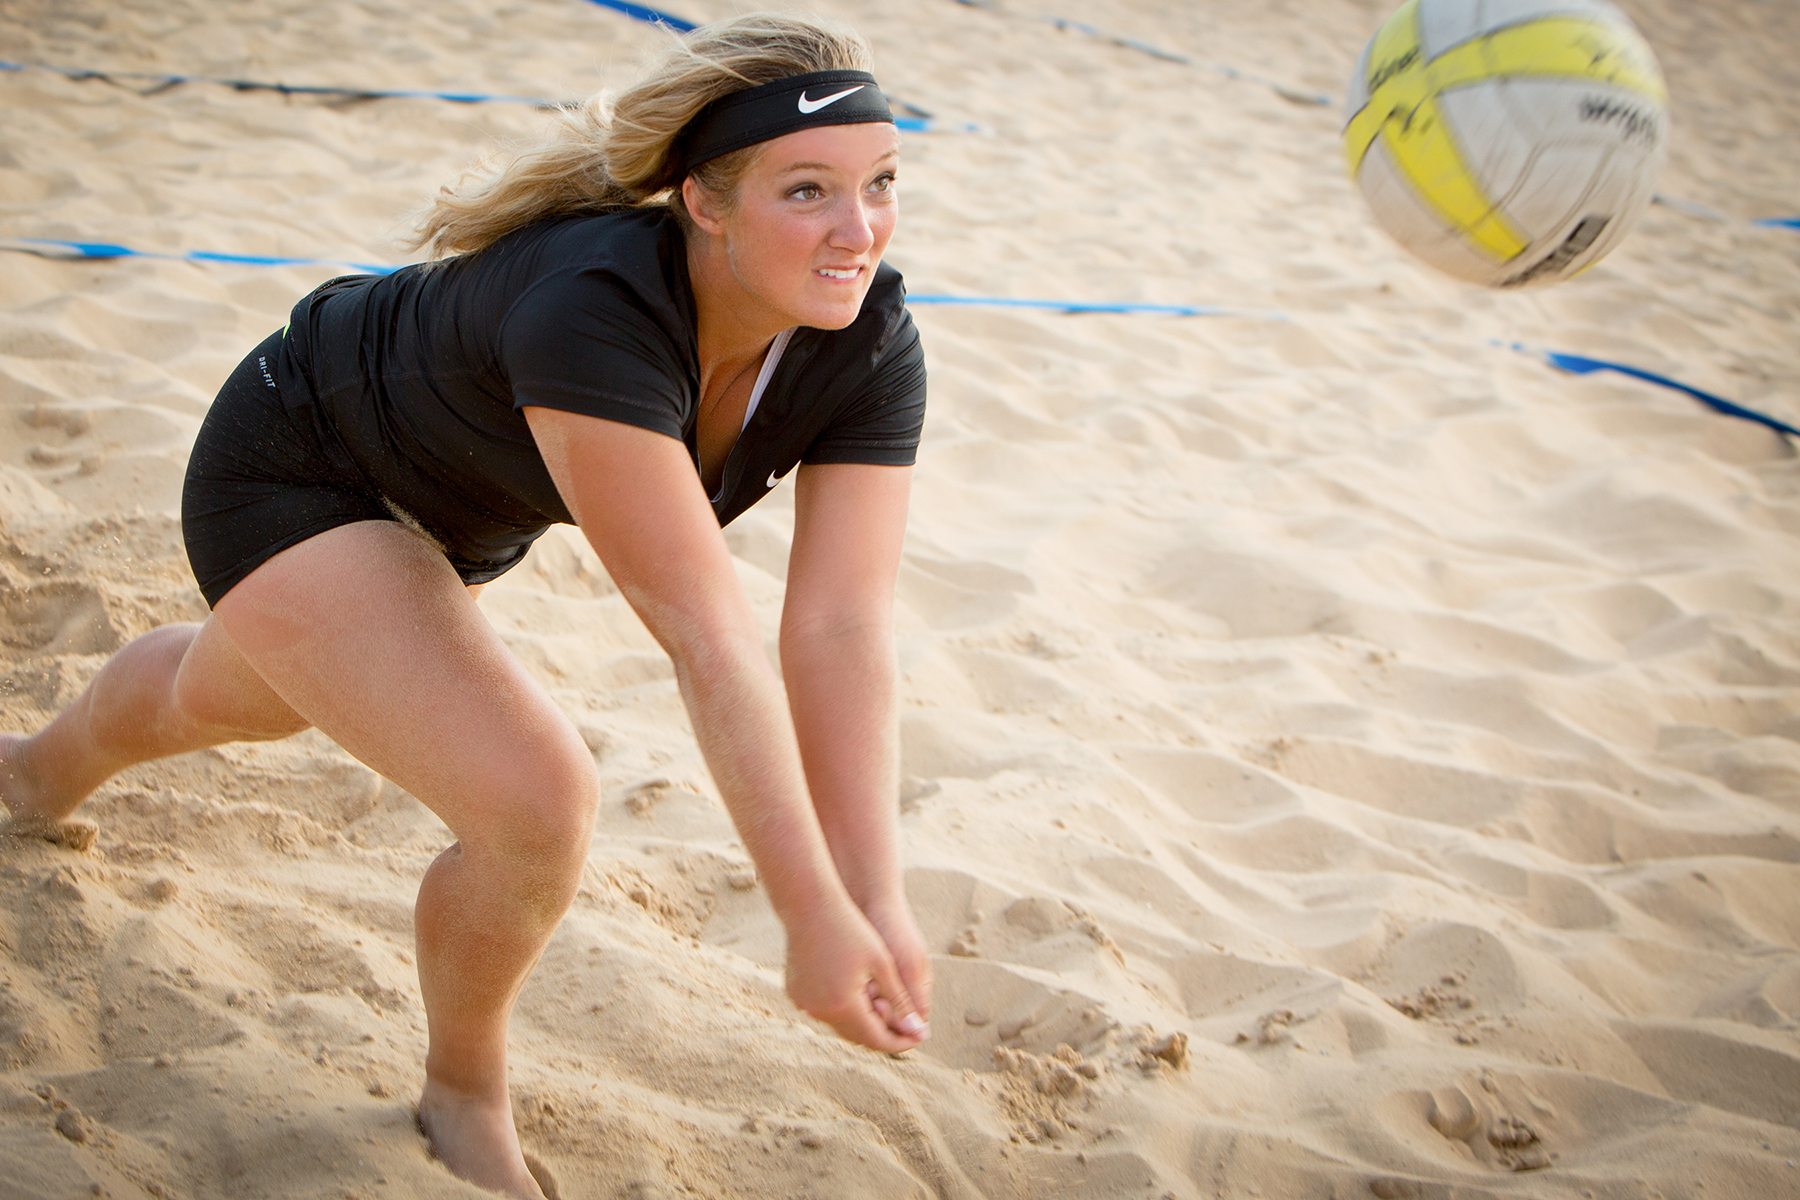 Outpost's Sand Volleyball Courts, South Bend, IN